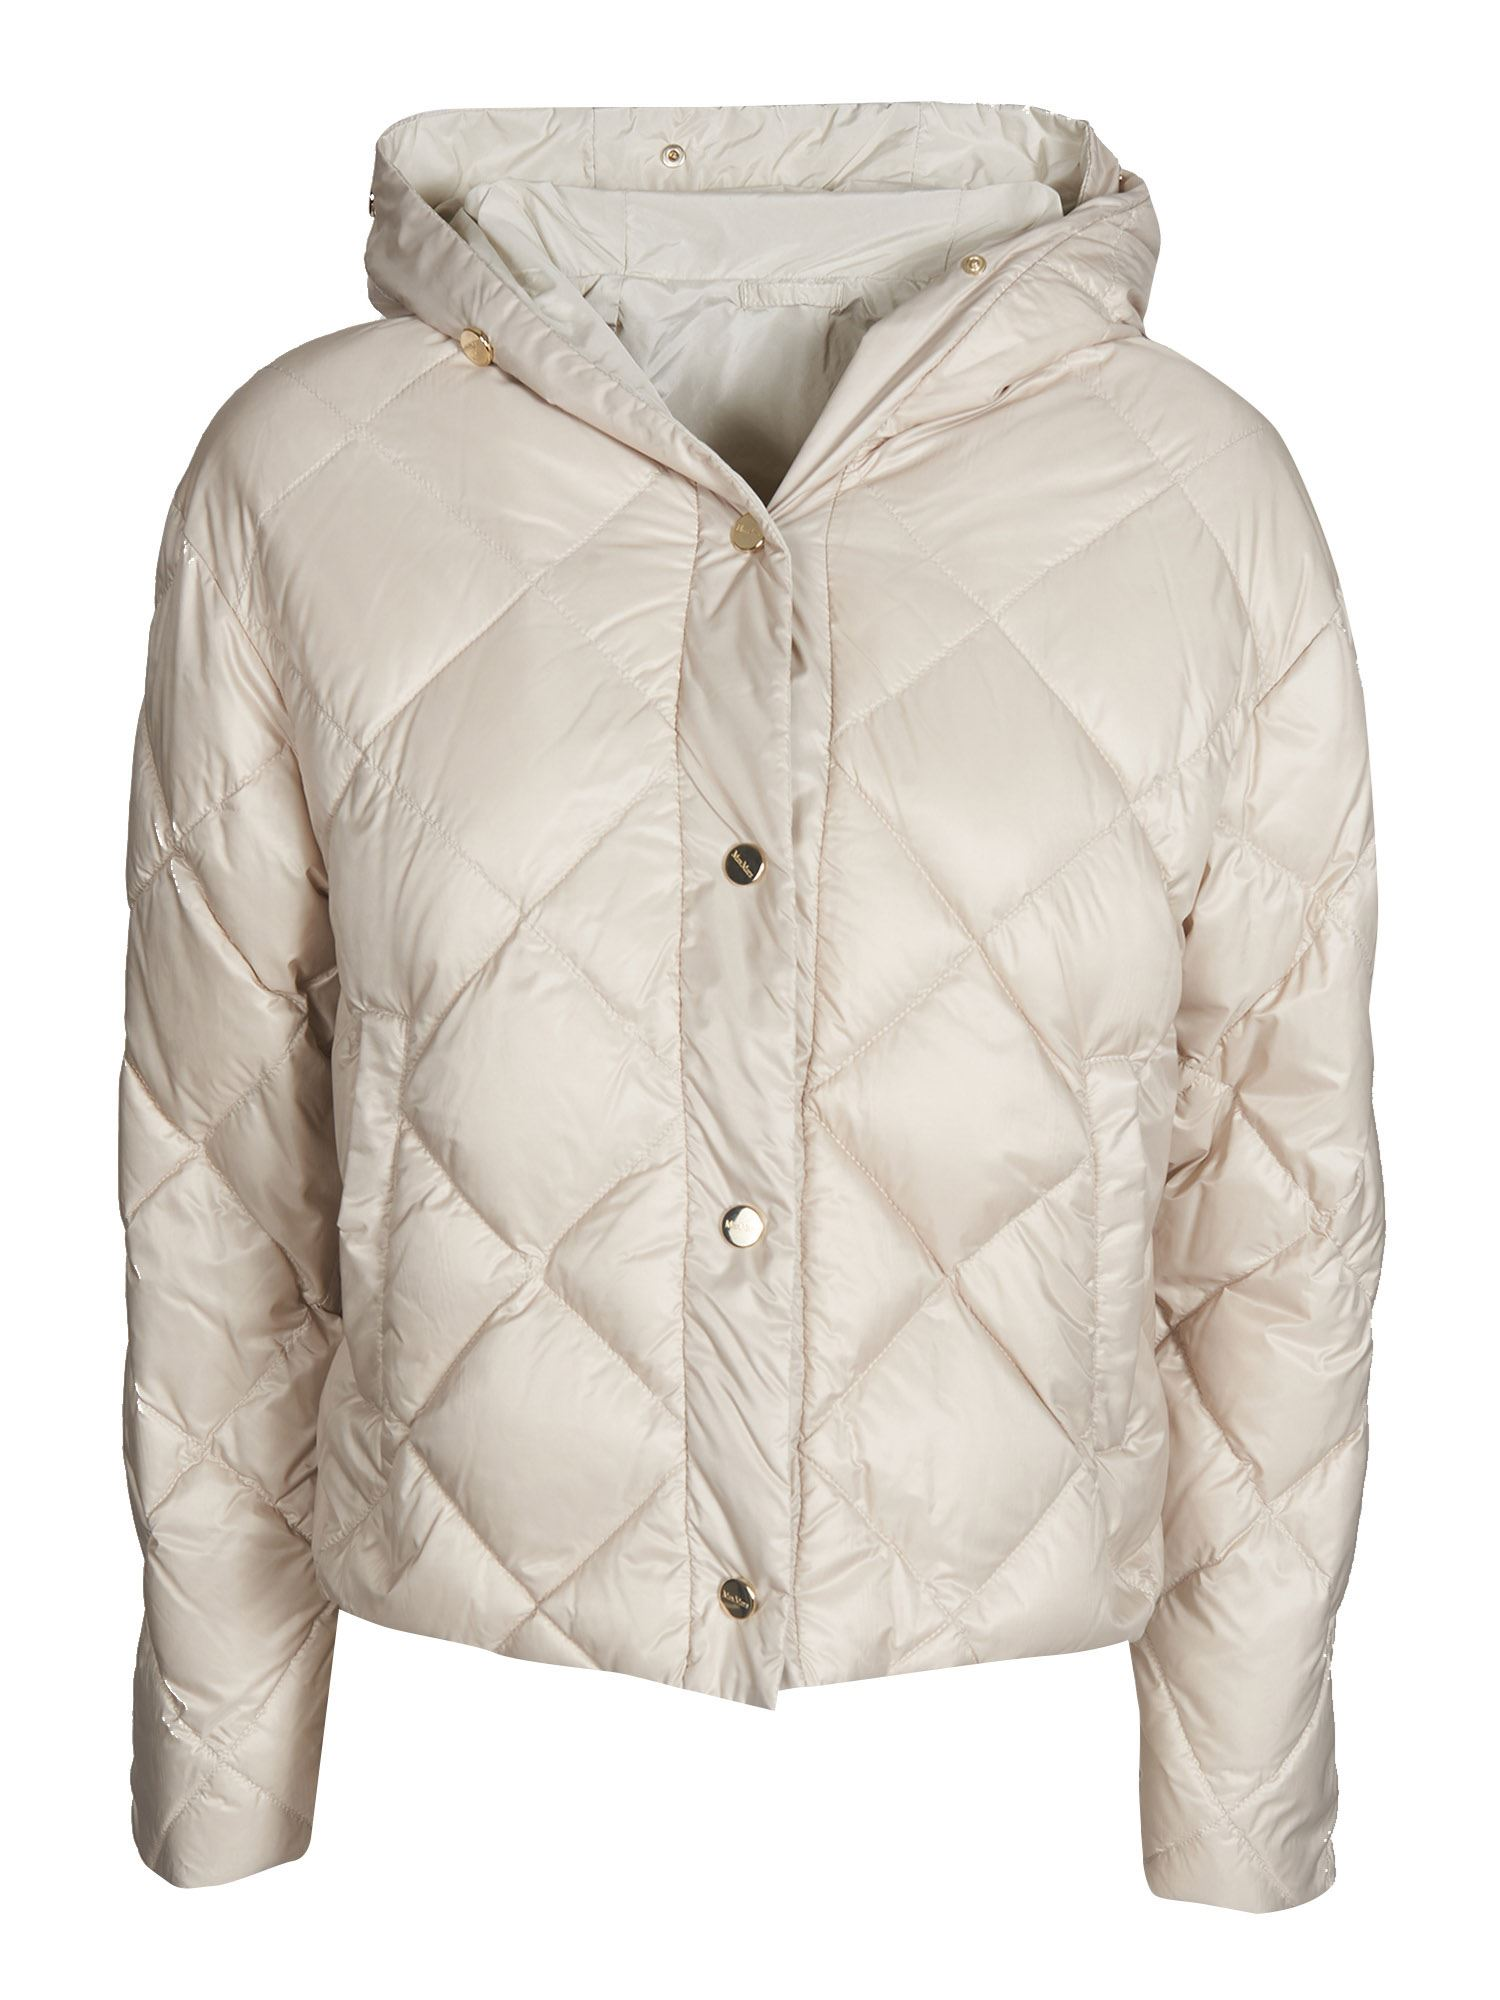 Max Mara Jackets CISOFT HOODED DOWN JACKET IN ALBINO COLOR